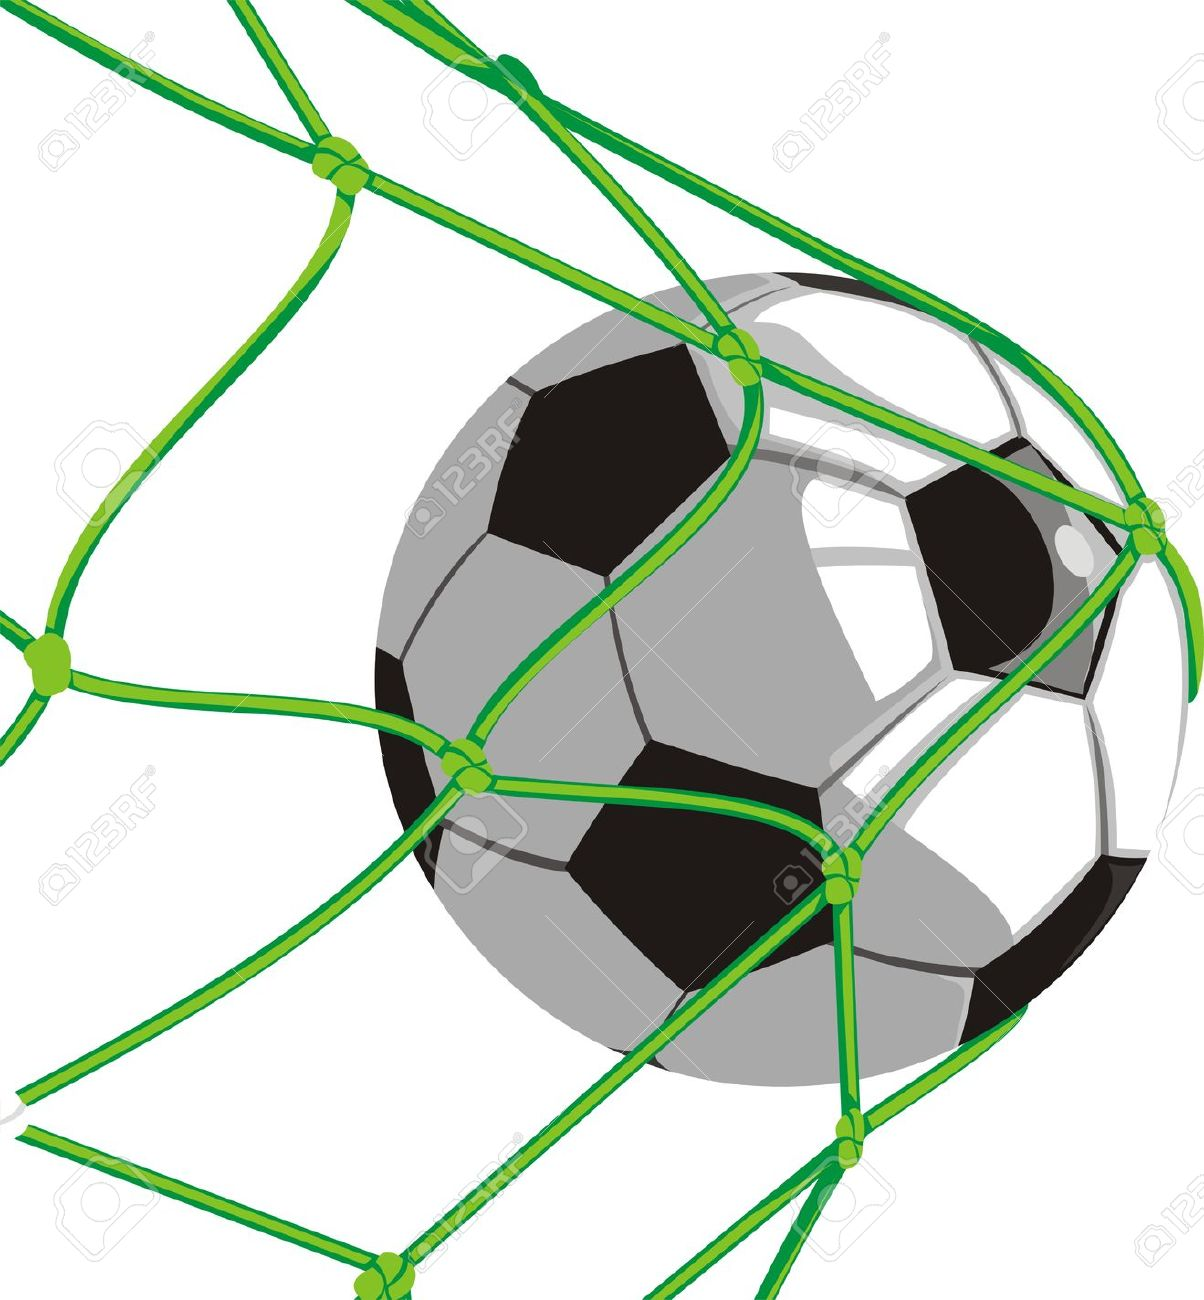 Soccer ball clipart green png library download Soccer ball and goal clipart - ClipartFest png library download